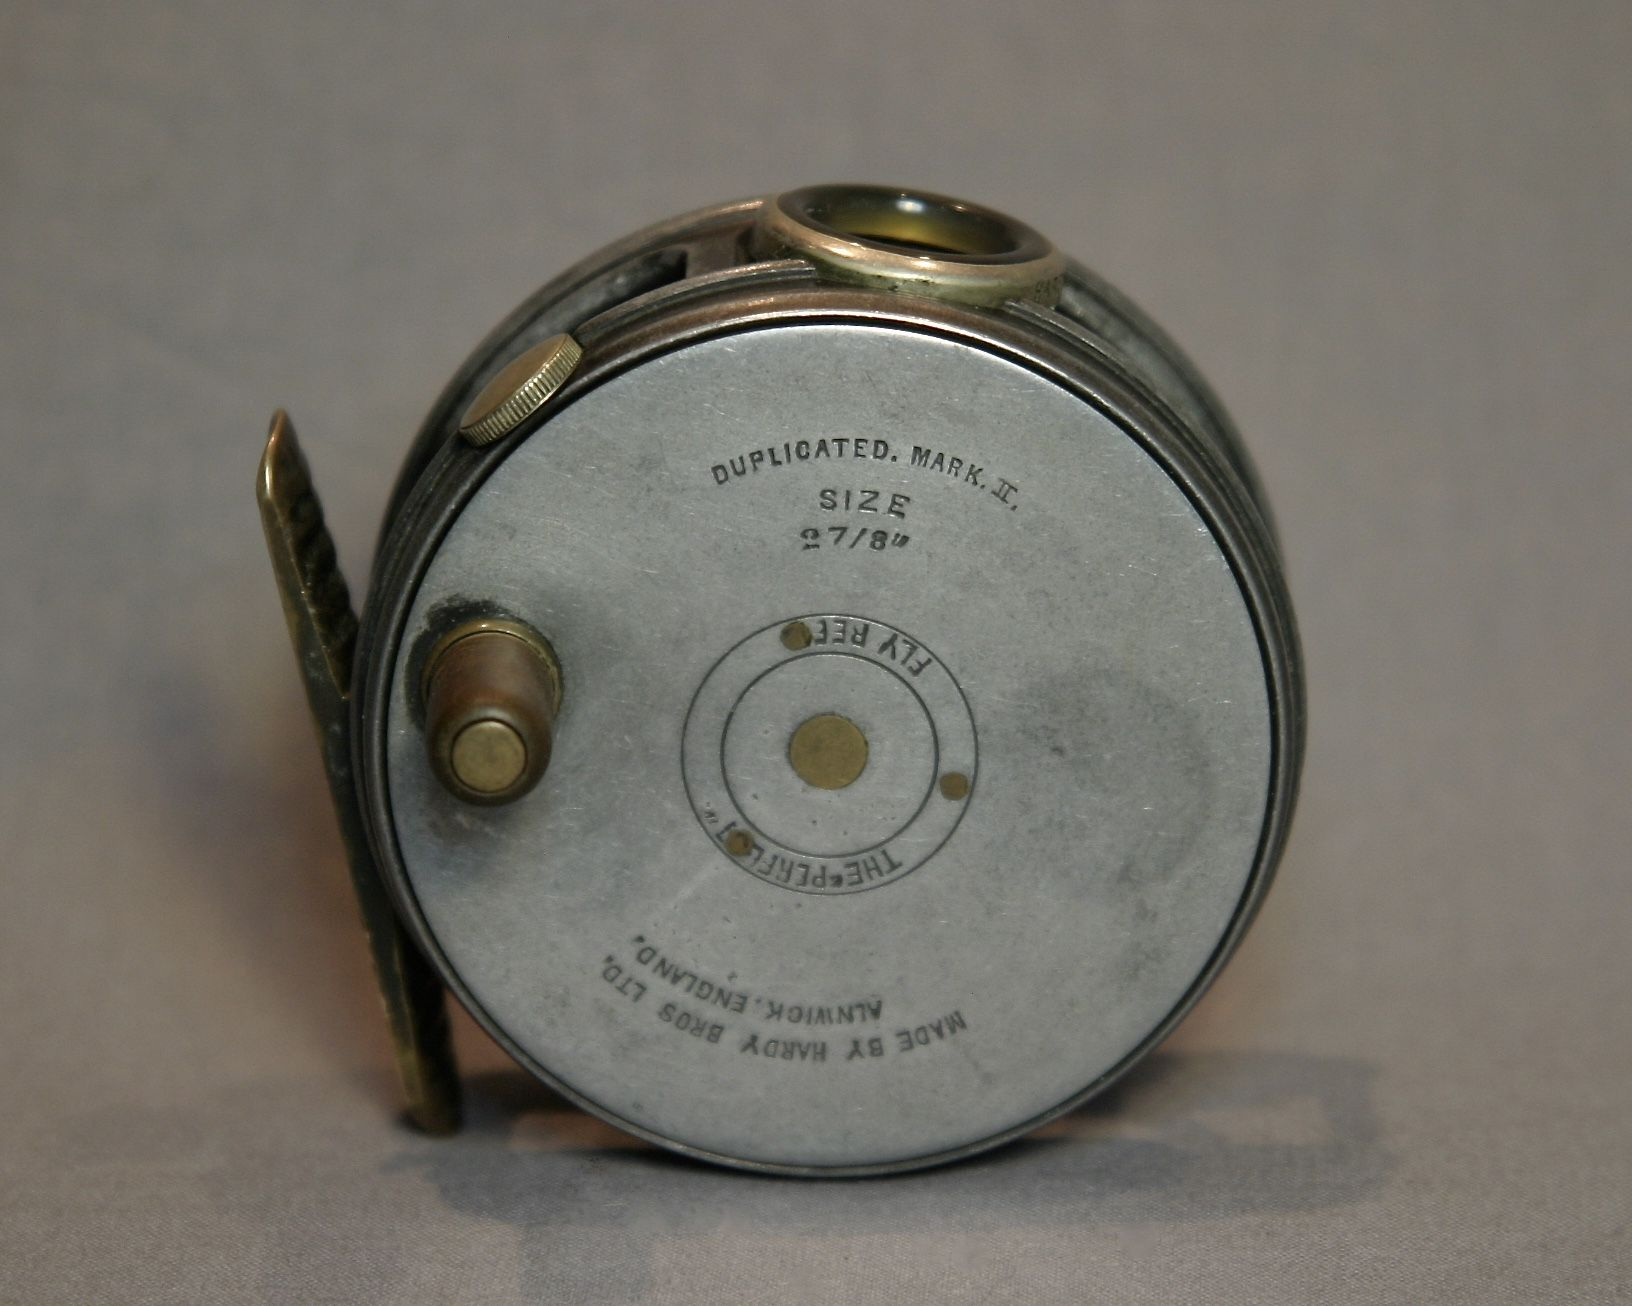 A Wonderful Old Hardy Reel An Exceptionally Rare 2 7 8 Silent Perfect The Reel Has An Ivorine Handle Fishing Reels Fly Fishing Reels Fly Fishing Accessories